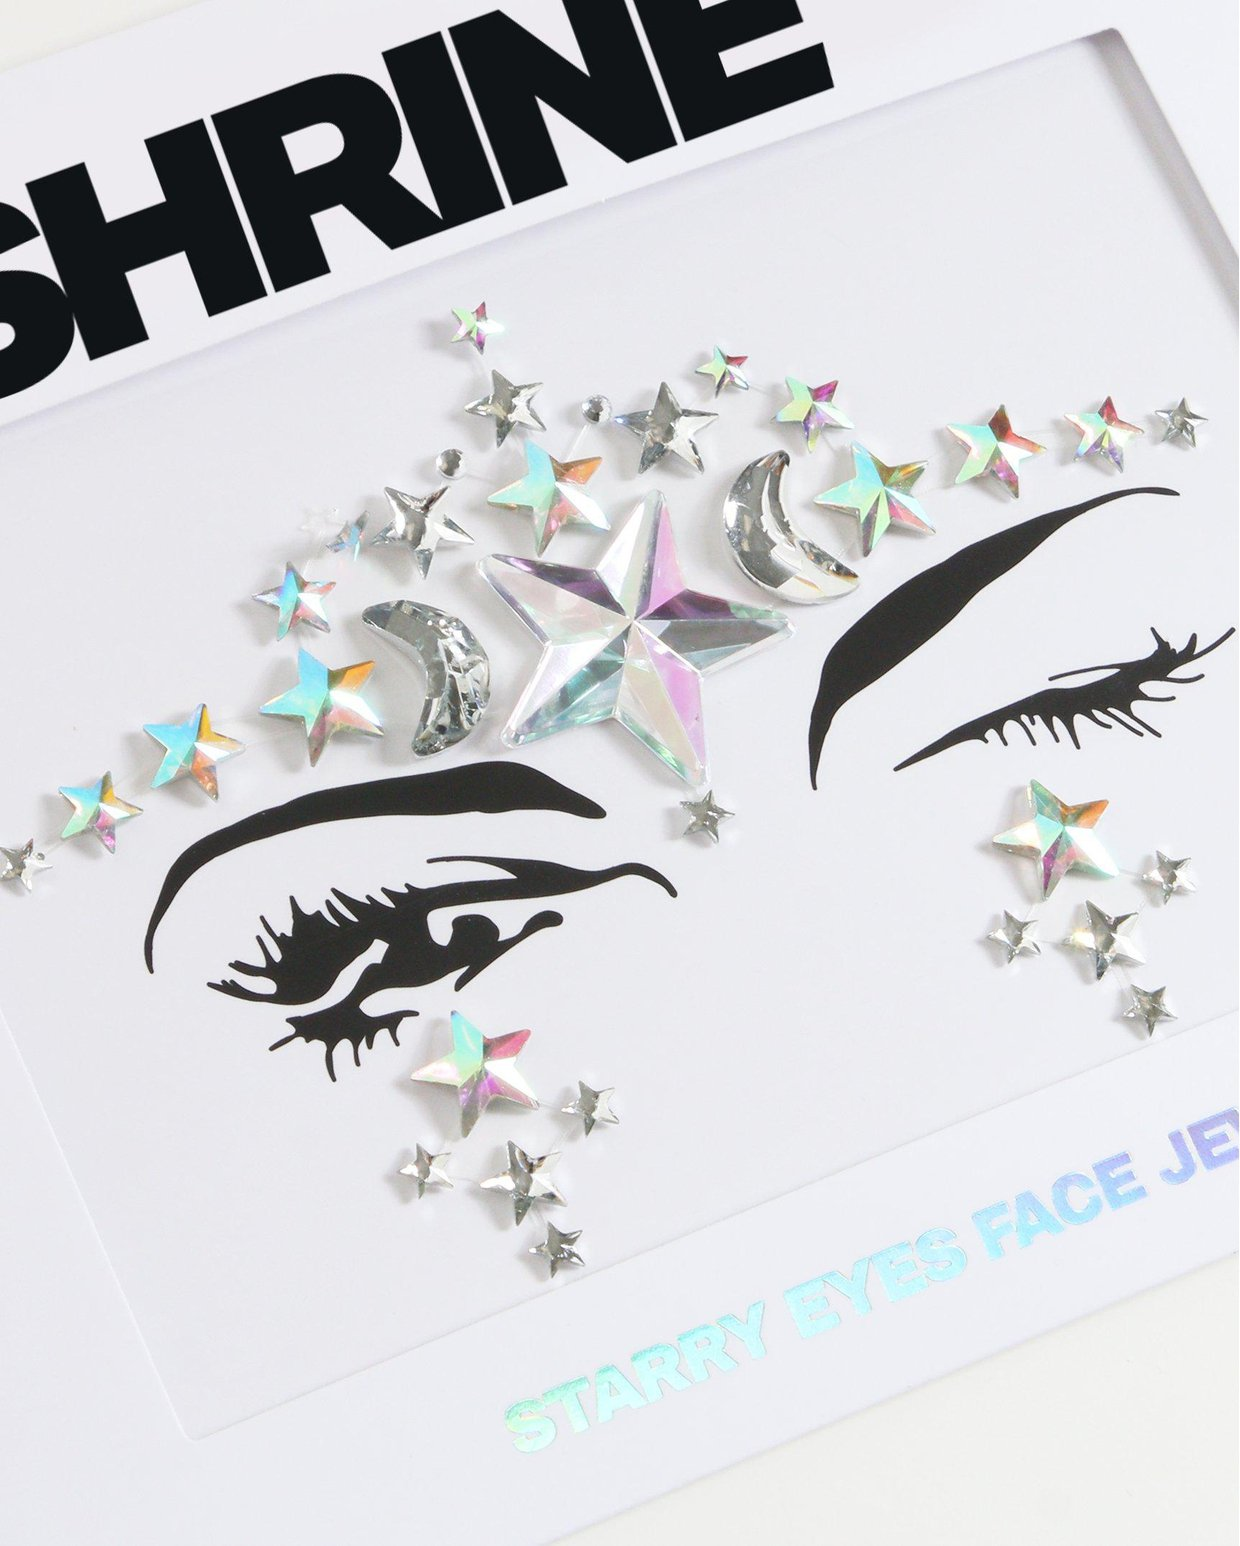 Starry Eyes Face Jewels